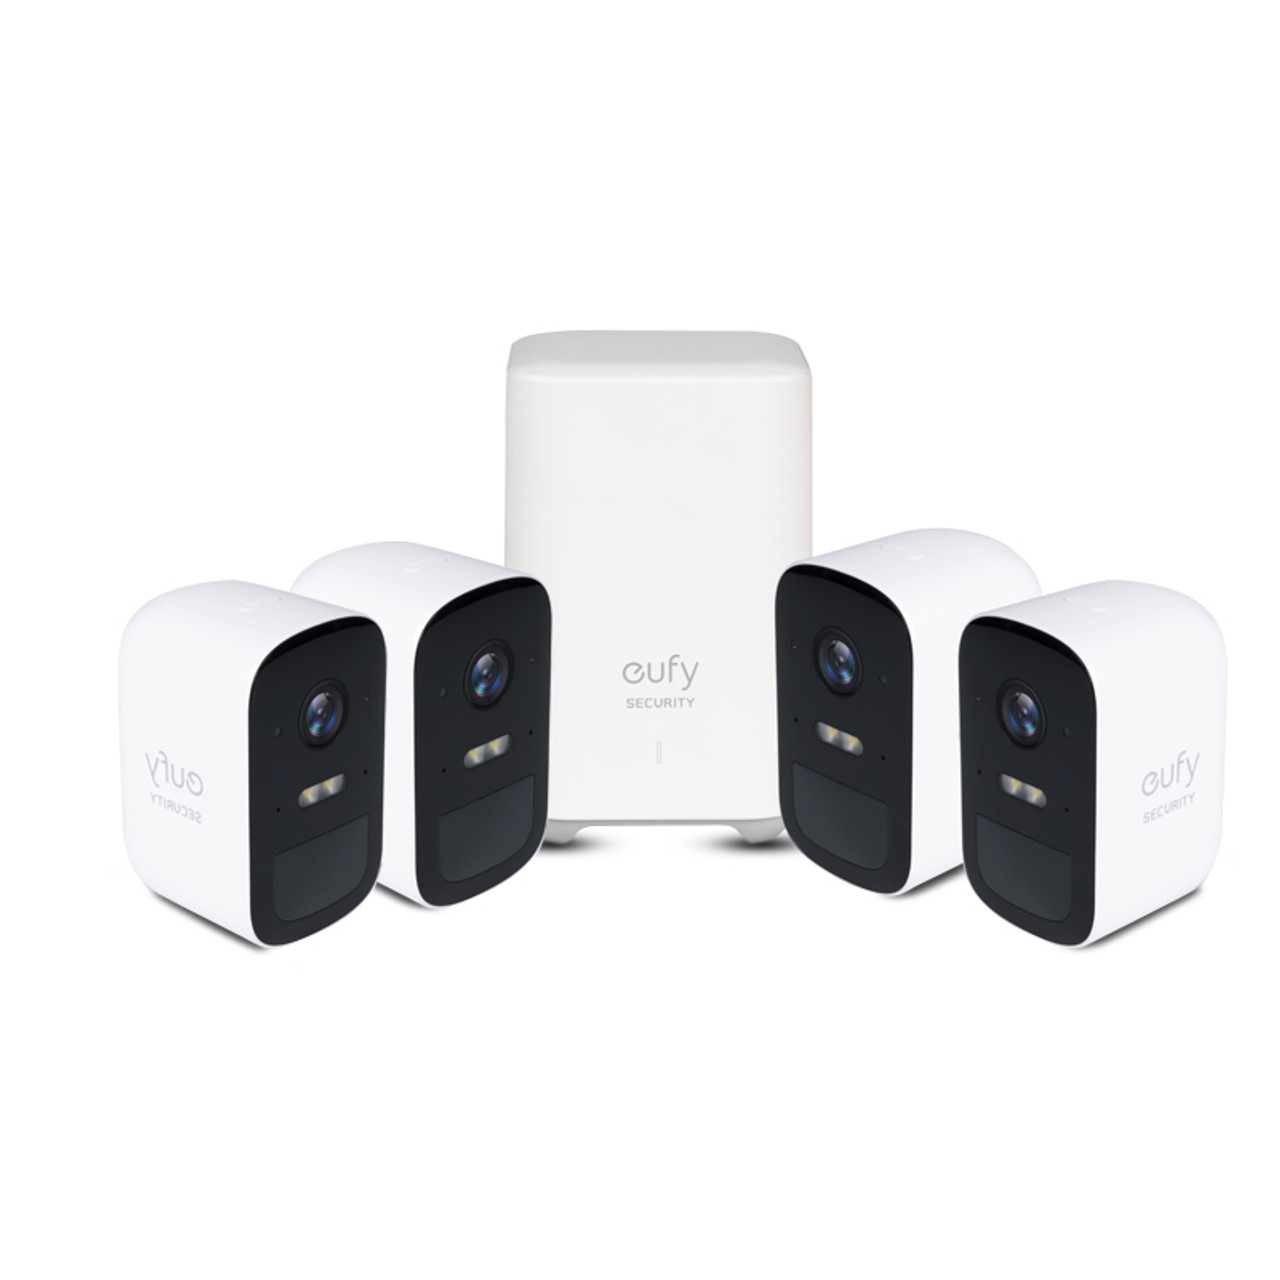 Eufy T8833CD2 1080p 2C Wire Free Security 4-Camera Kit With AI Homebase Unit - RRP $699.95